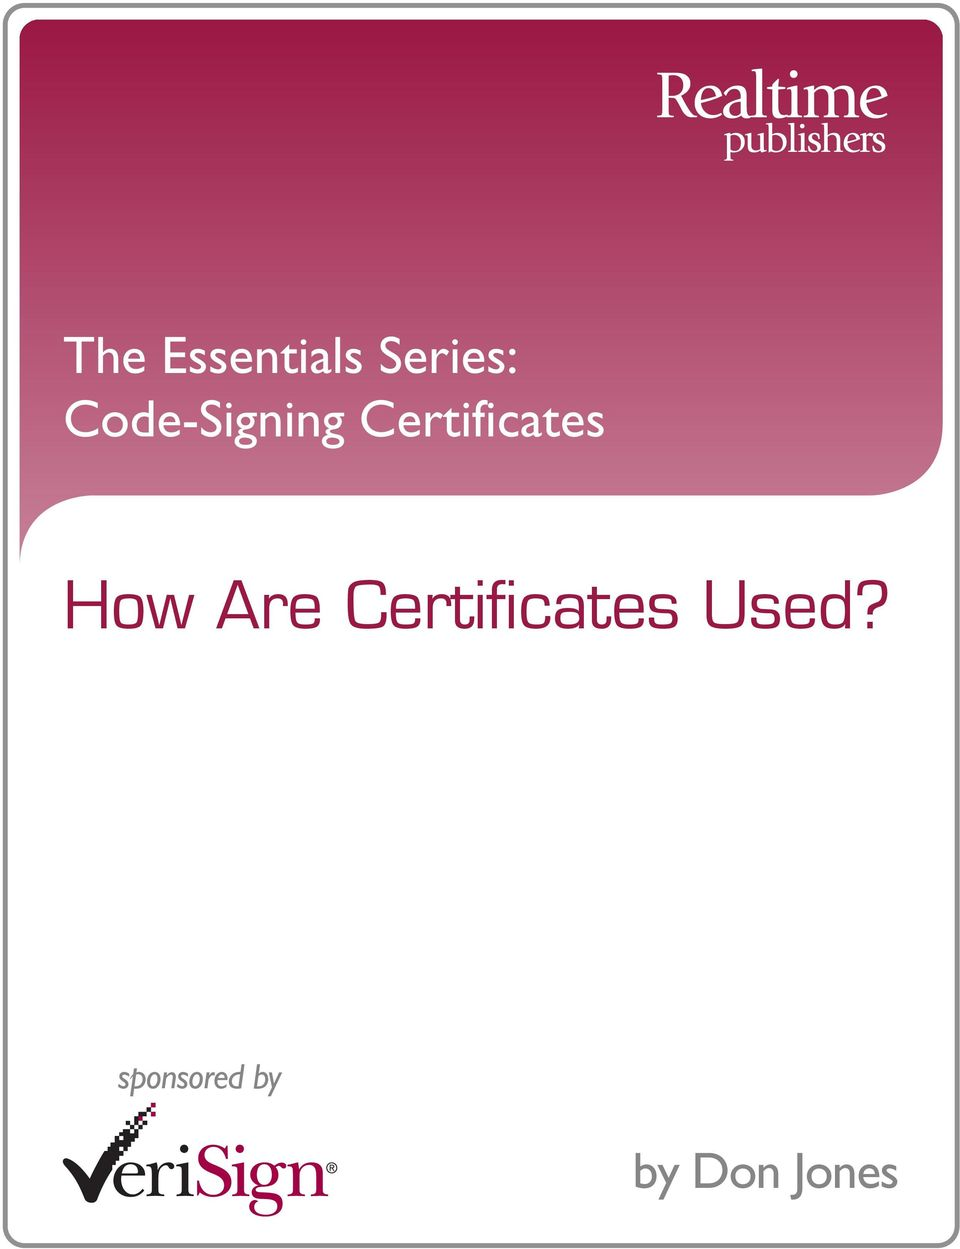 How Are Certificates Used?